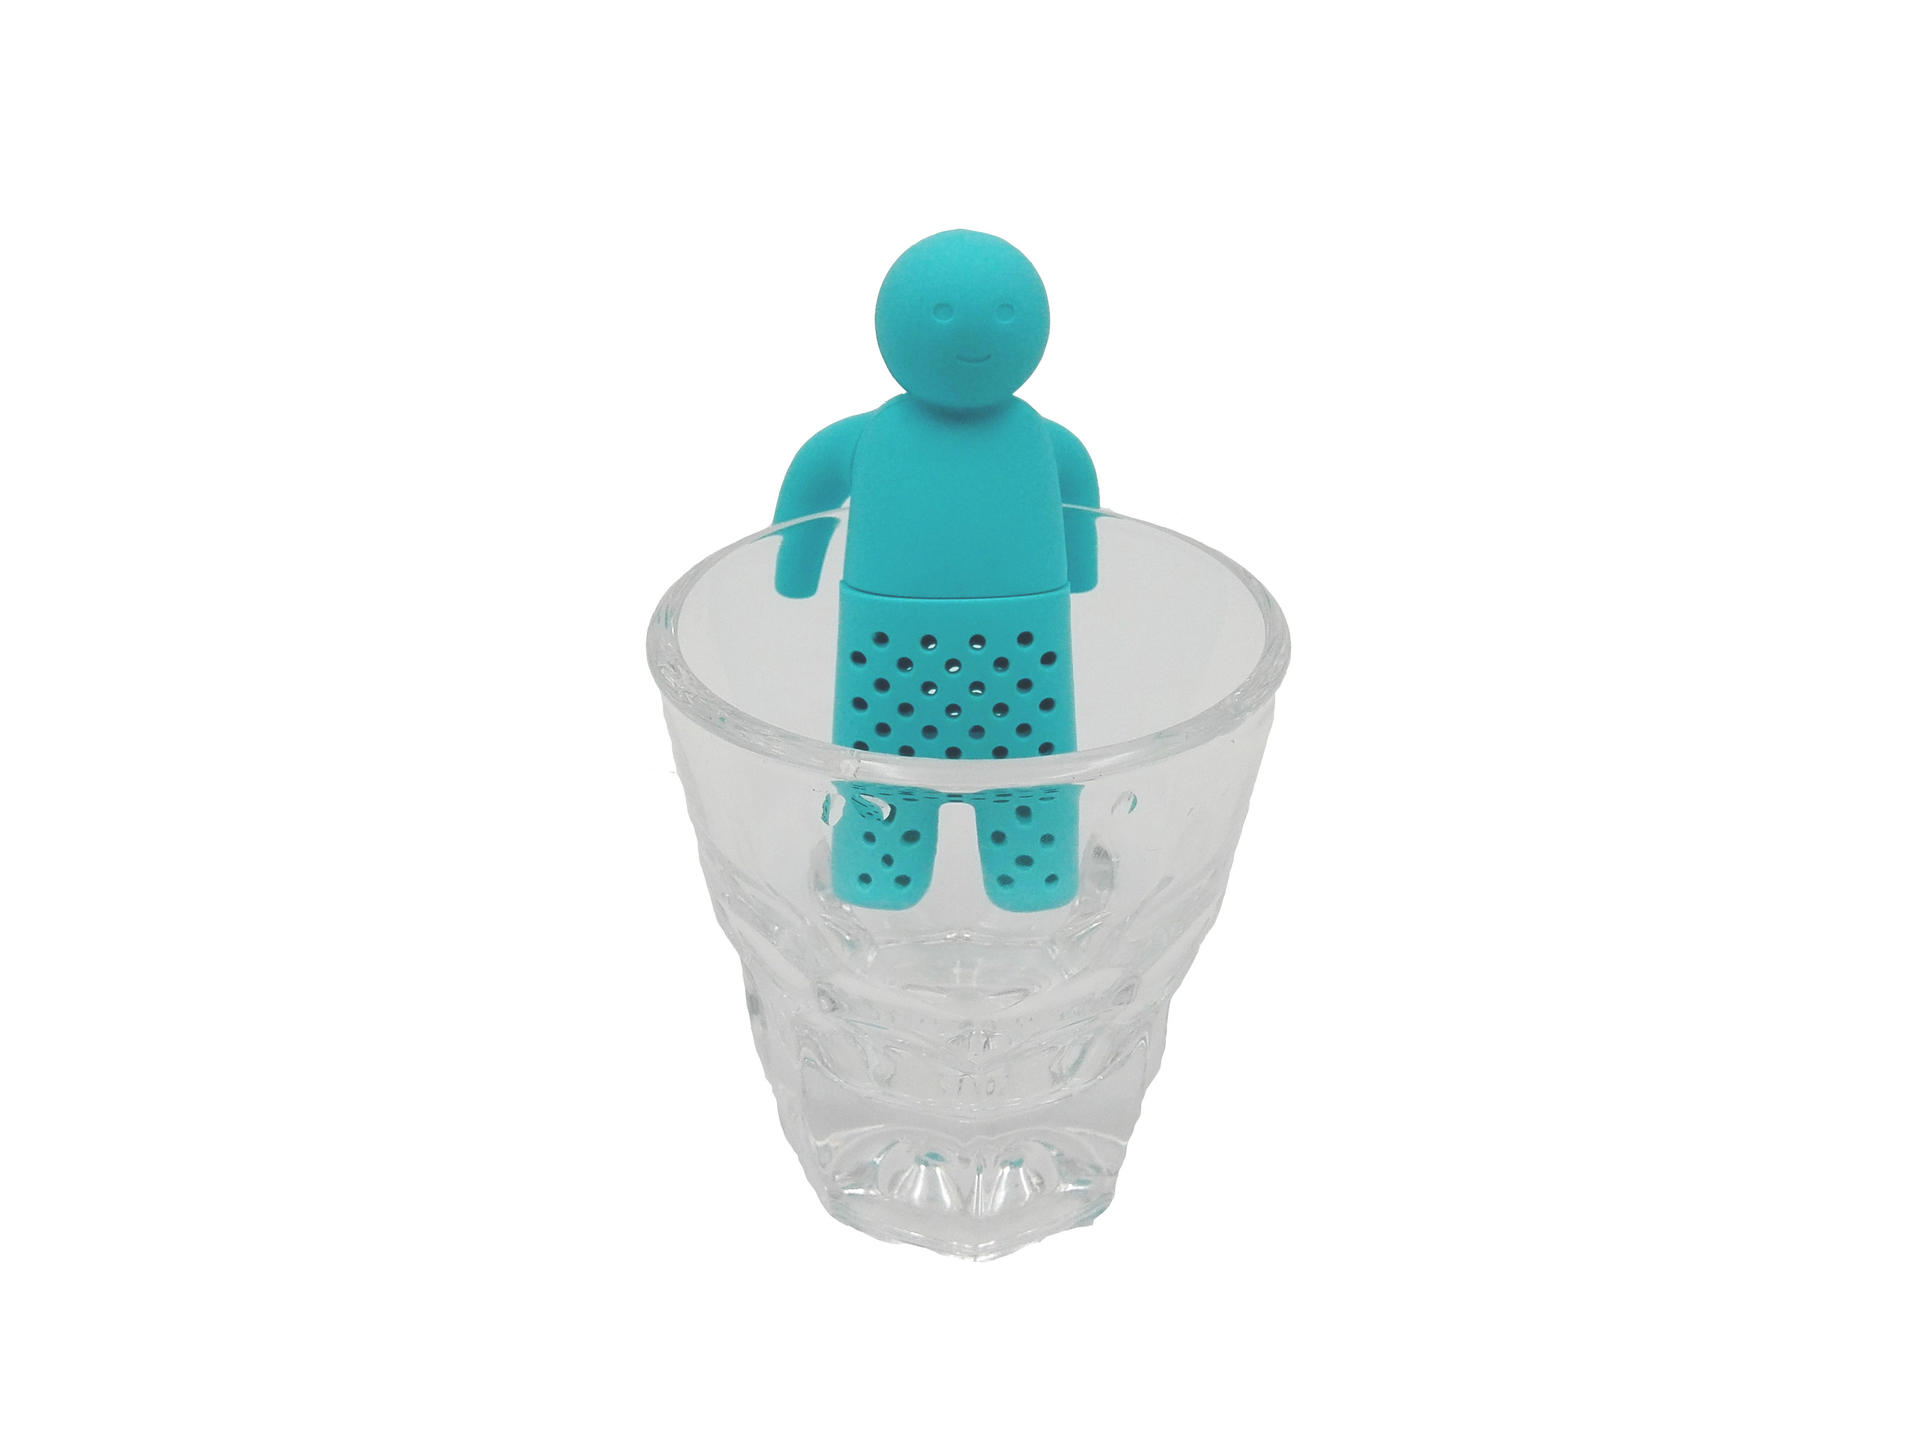 Silicone Tea Infuser for Loose Leaf Tea Non-toxic Tea Filters Tea Cup Strainer Kitchen Accessories